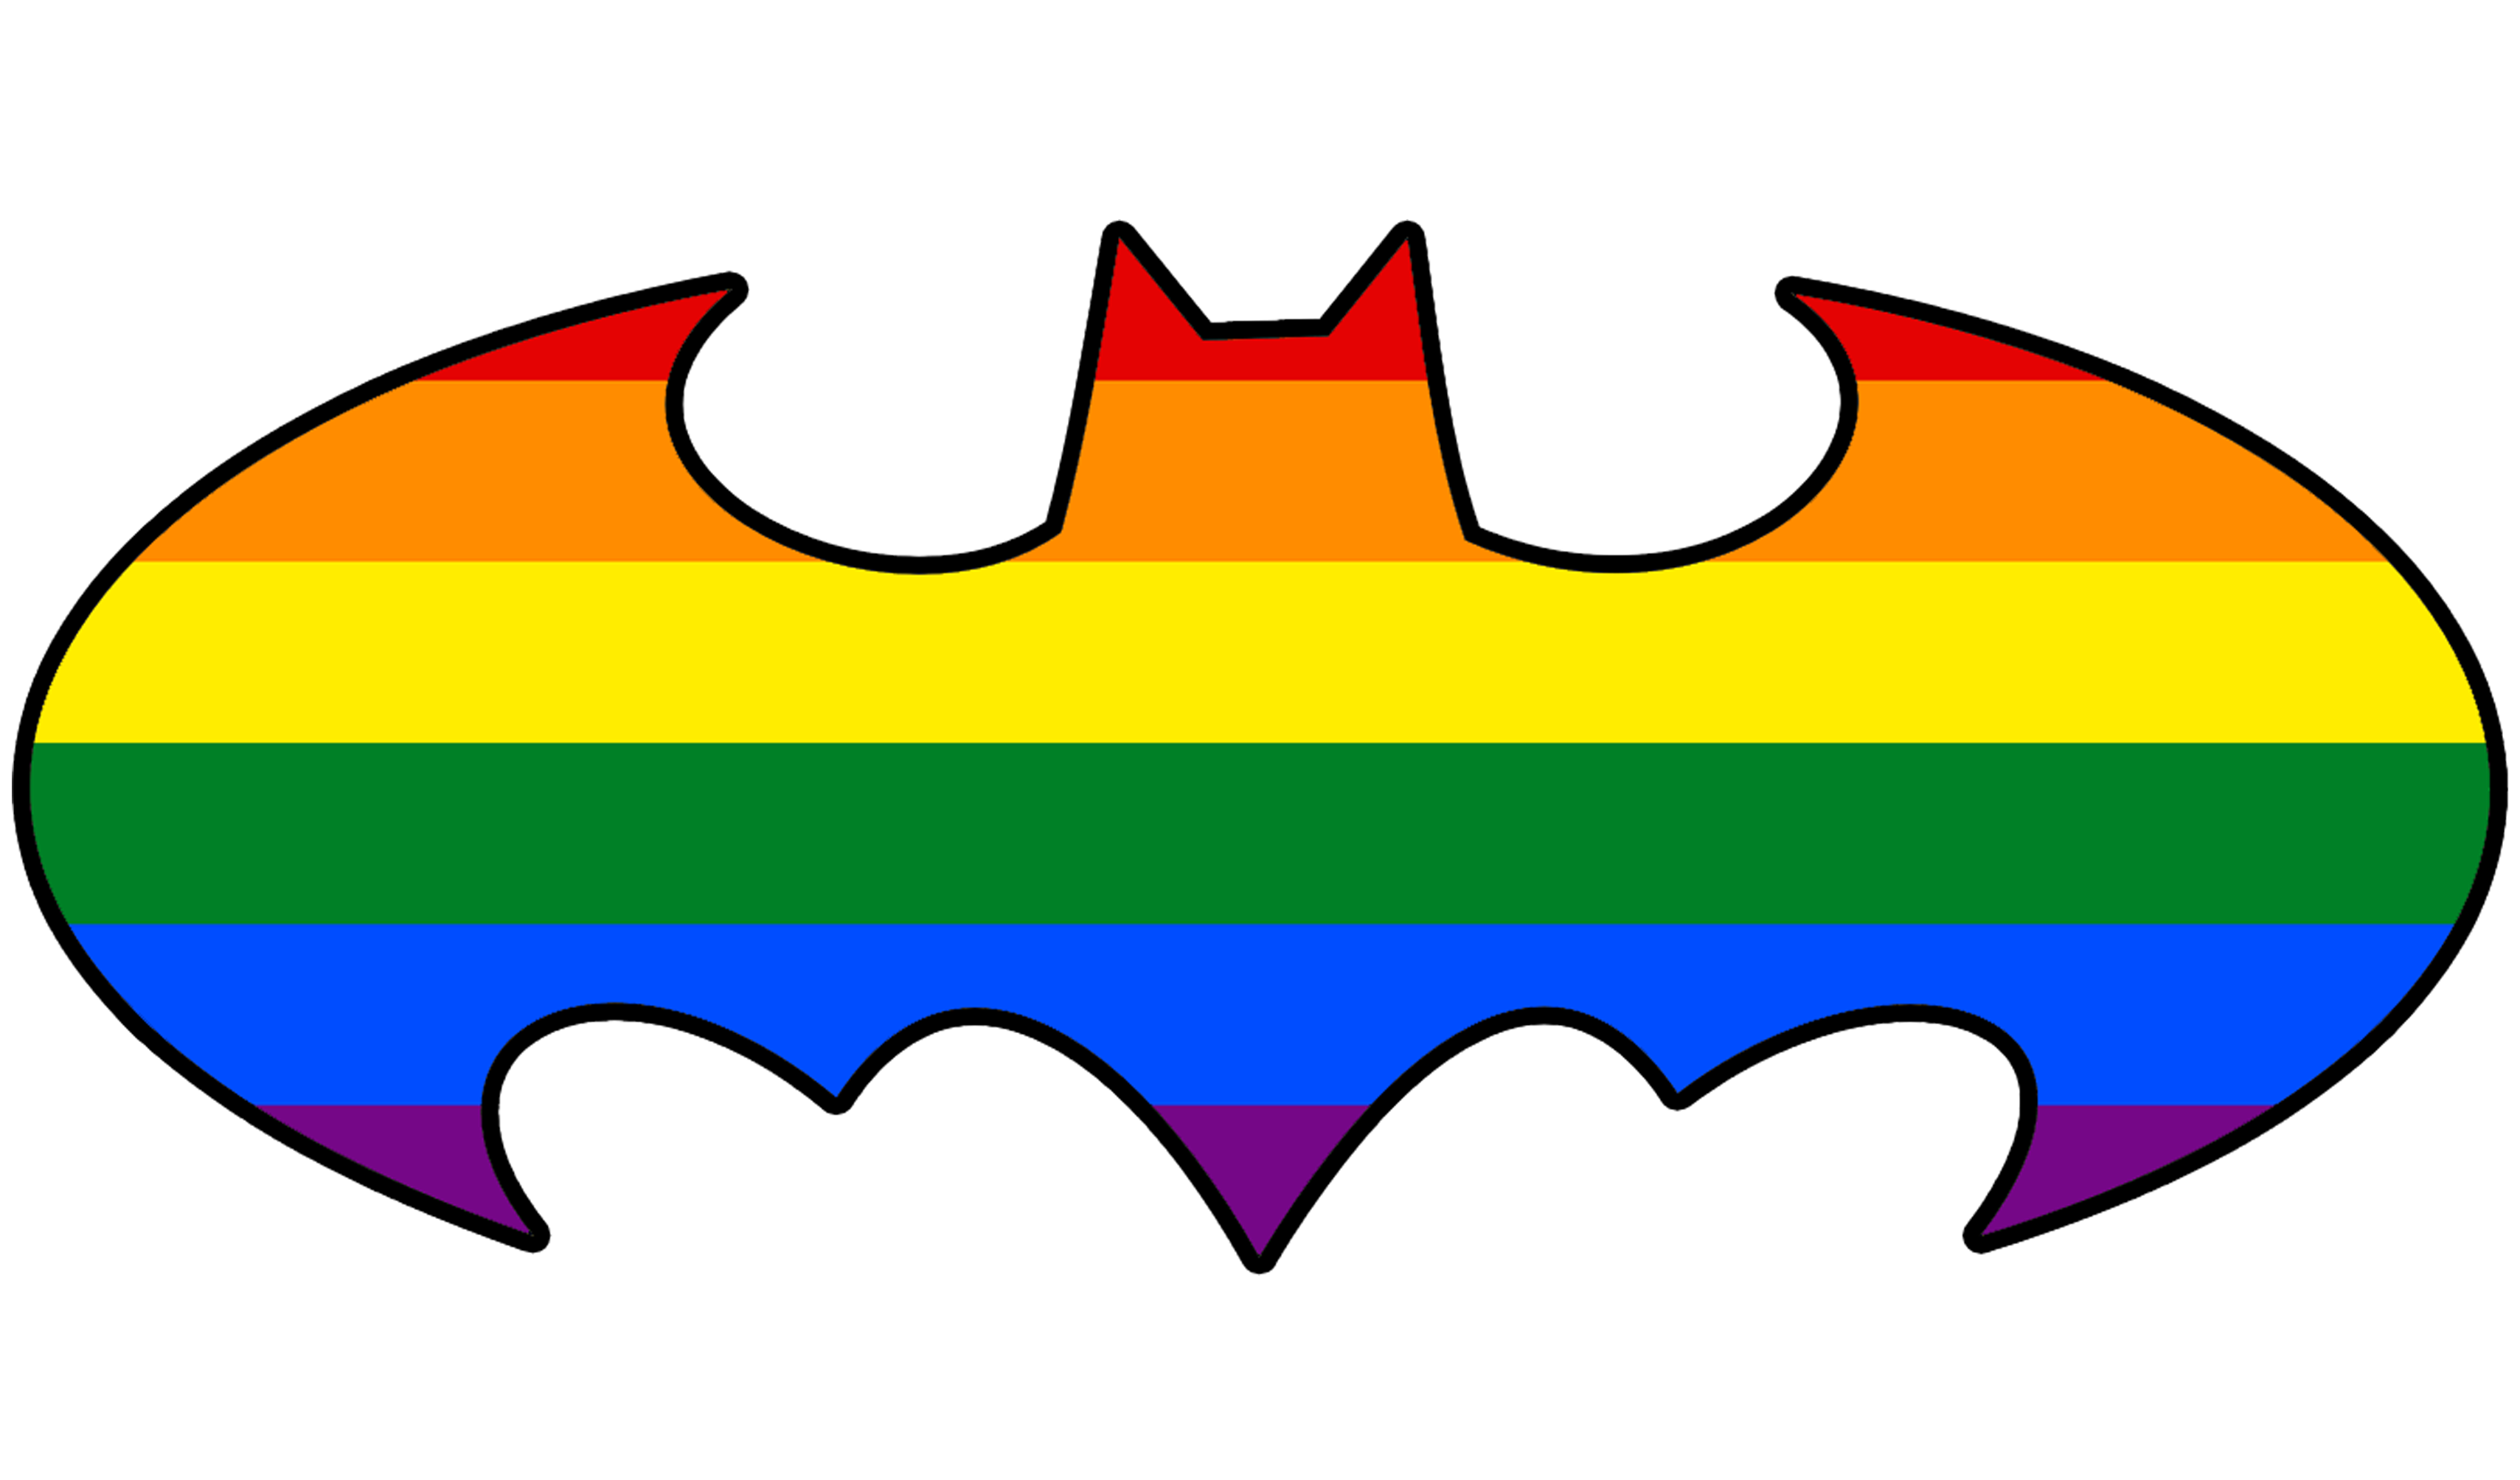 Batman LGBT symbols Gay pride Bisexual pride flag - adventure time @kissing.com